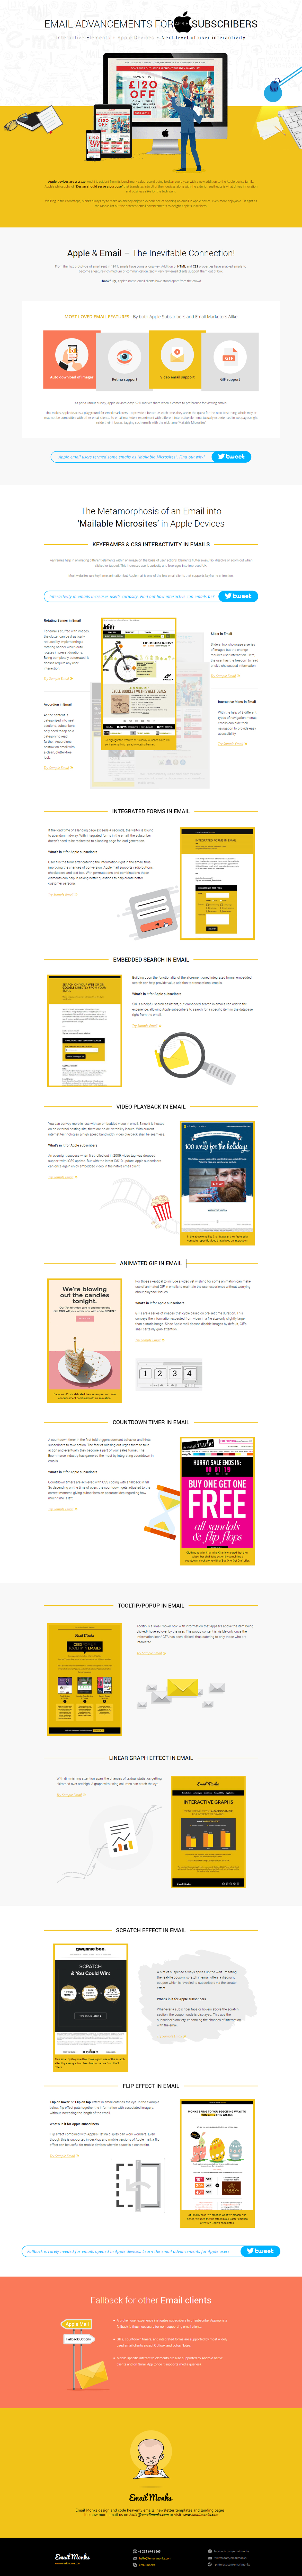 Interactive Email infographic